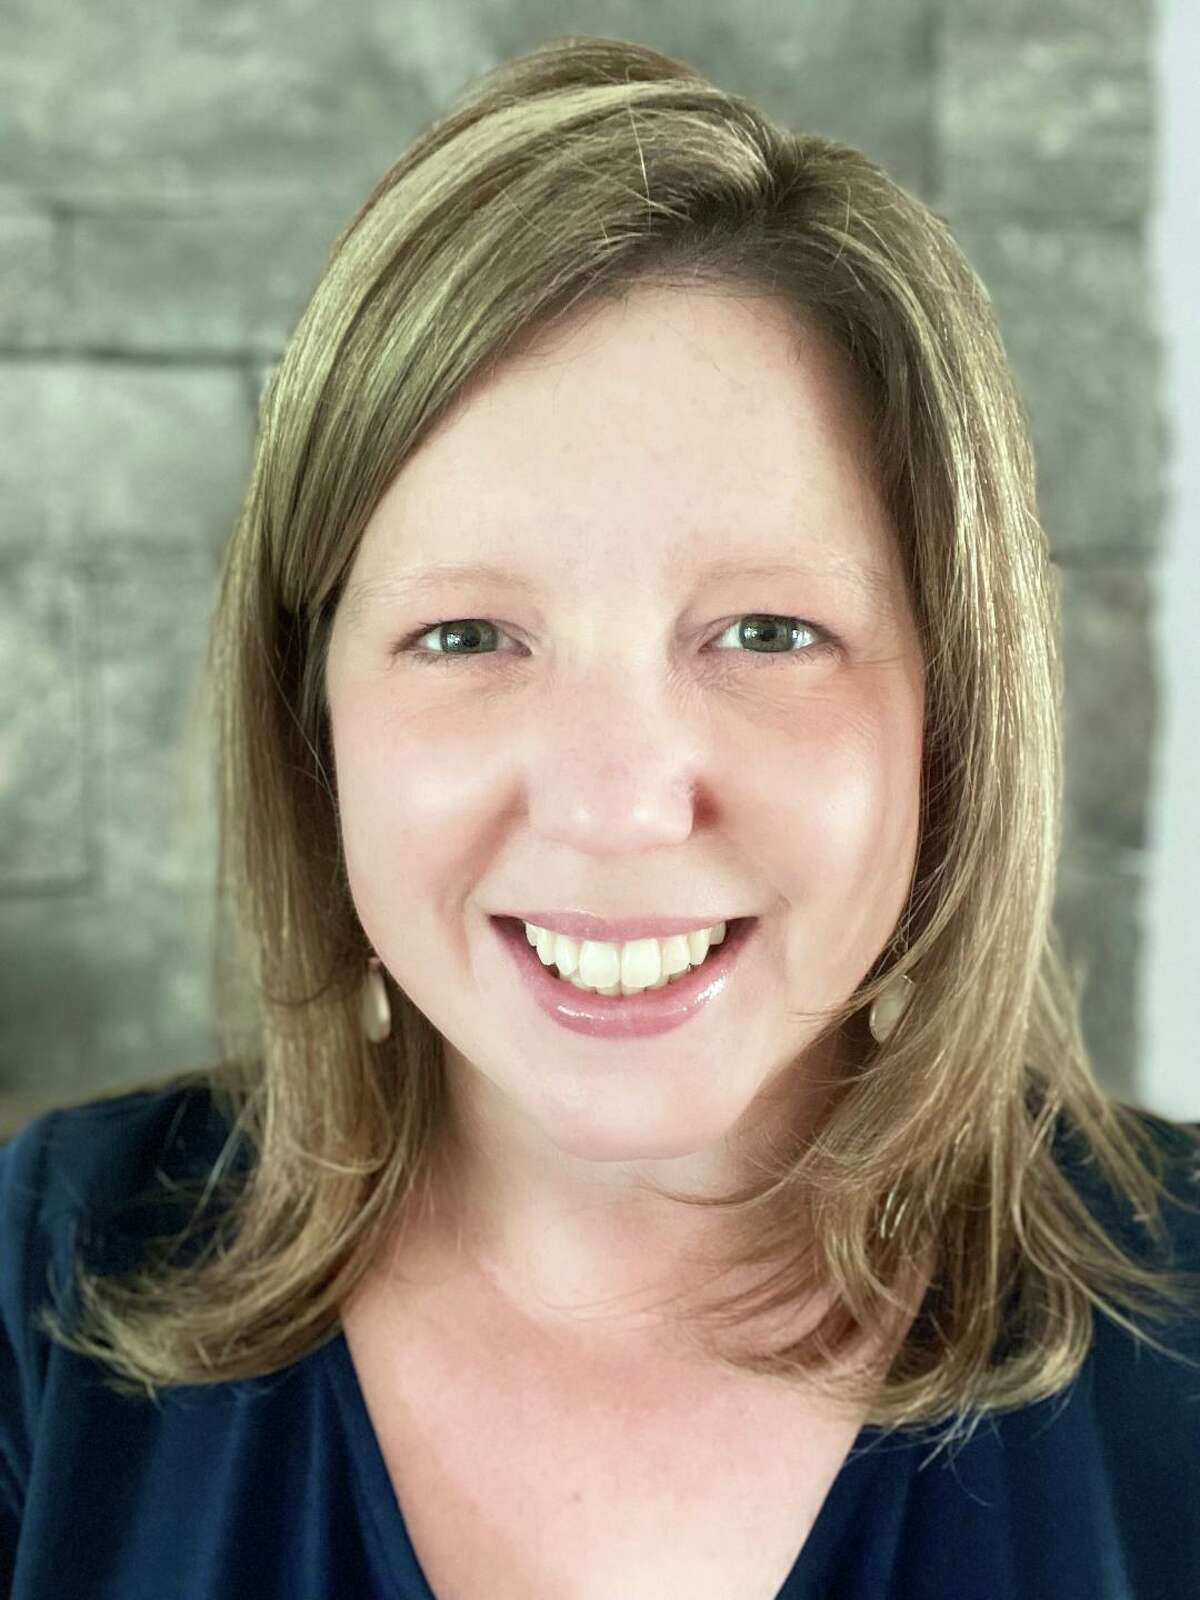 Michelle Tarsi has been named the new principal of Mill Ridge Primary School in Danbury, effective July 1, 2021.